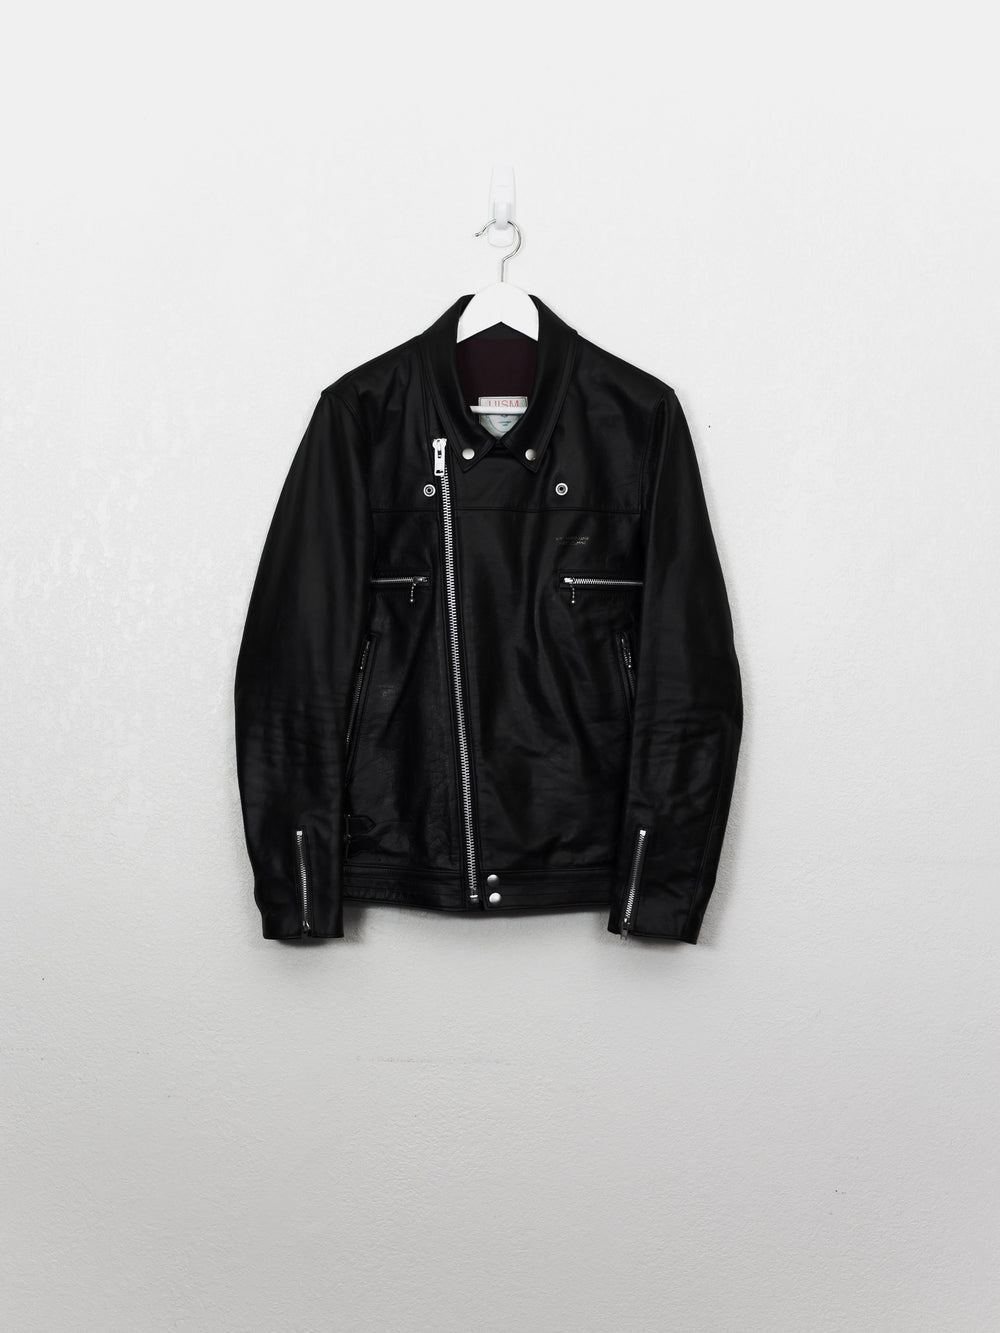 Undercover SS14 WMNNC Double Rider